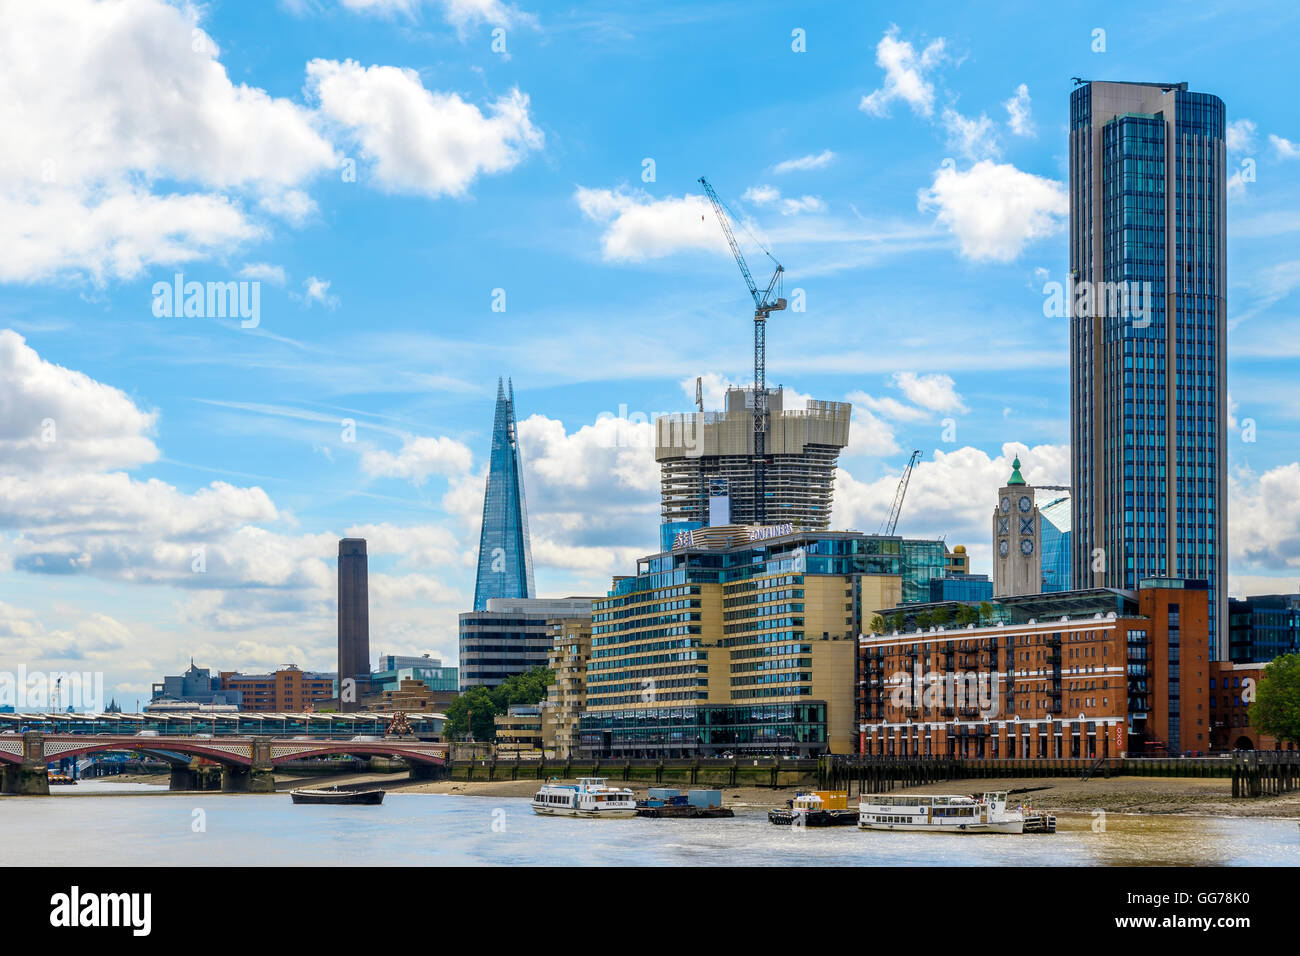 London cityscape including Blackfriars Railway Bridge, Tate Modern, The Shard, Sea Container House, OXO Tower and - Stock Image